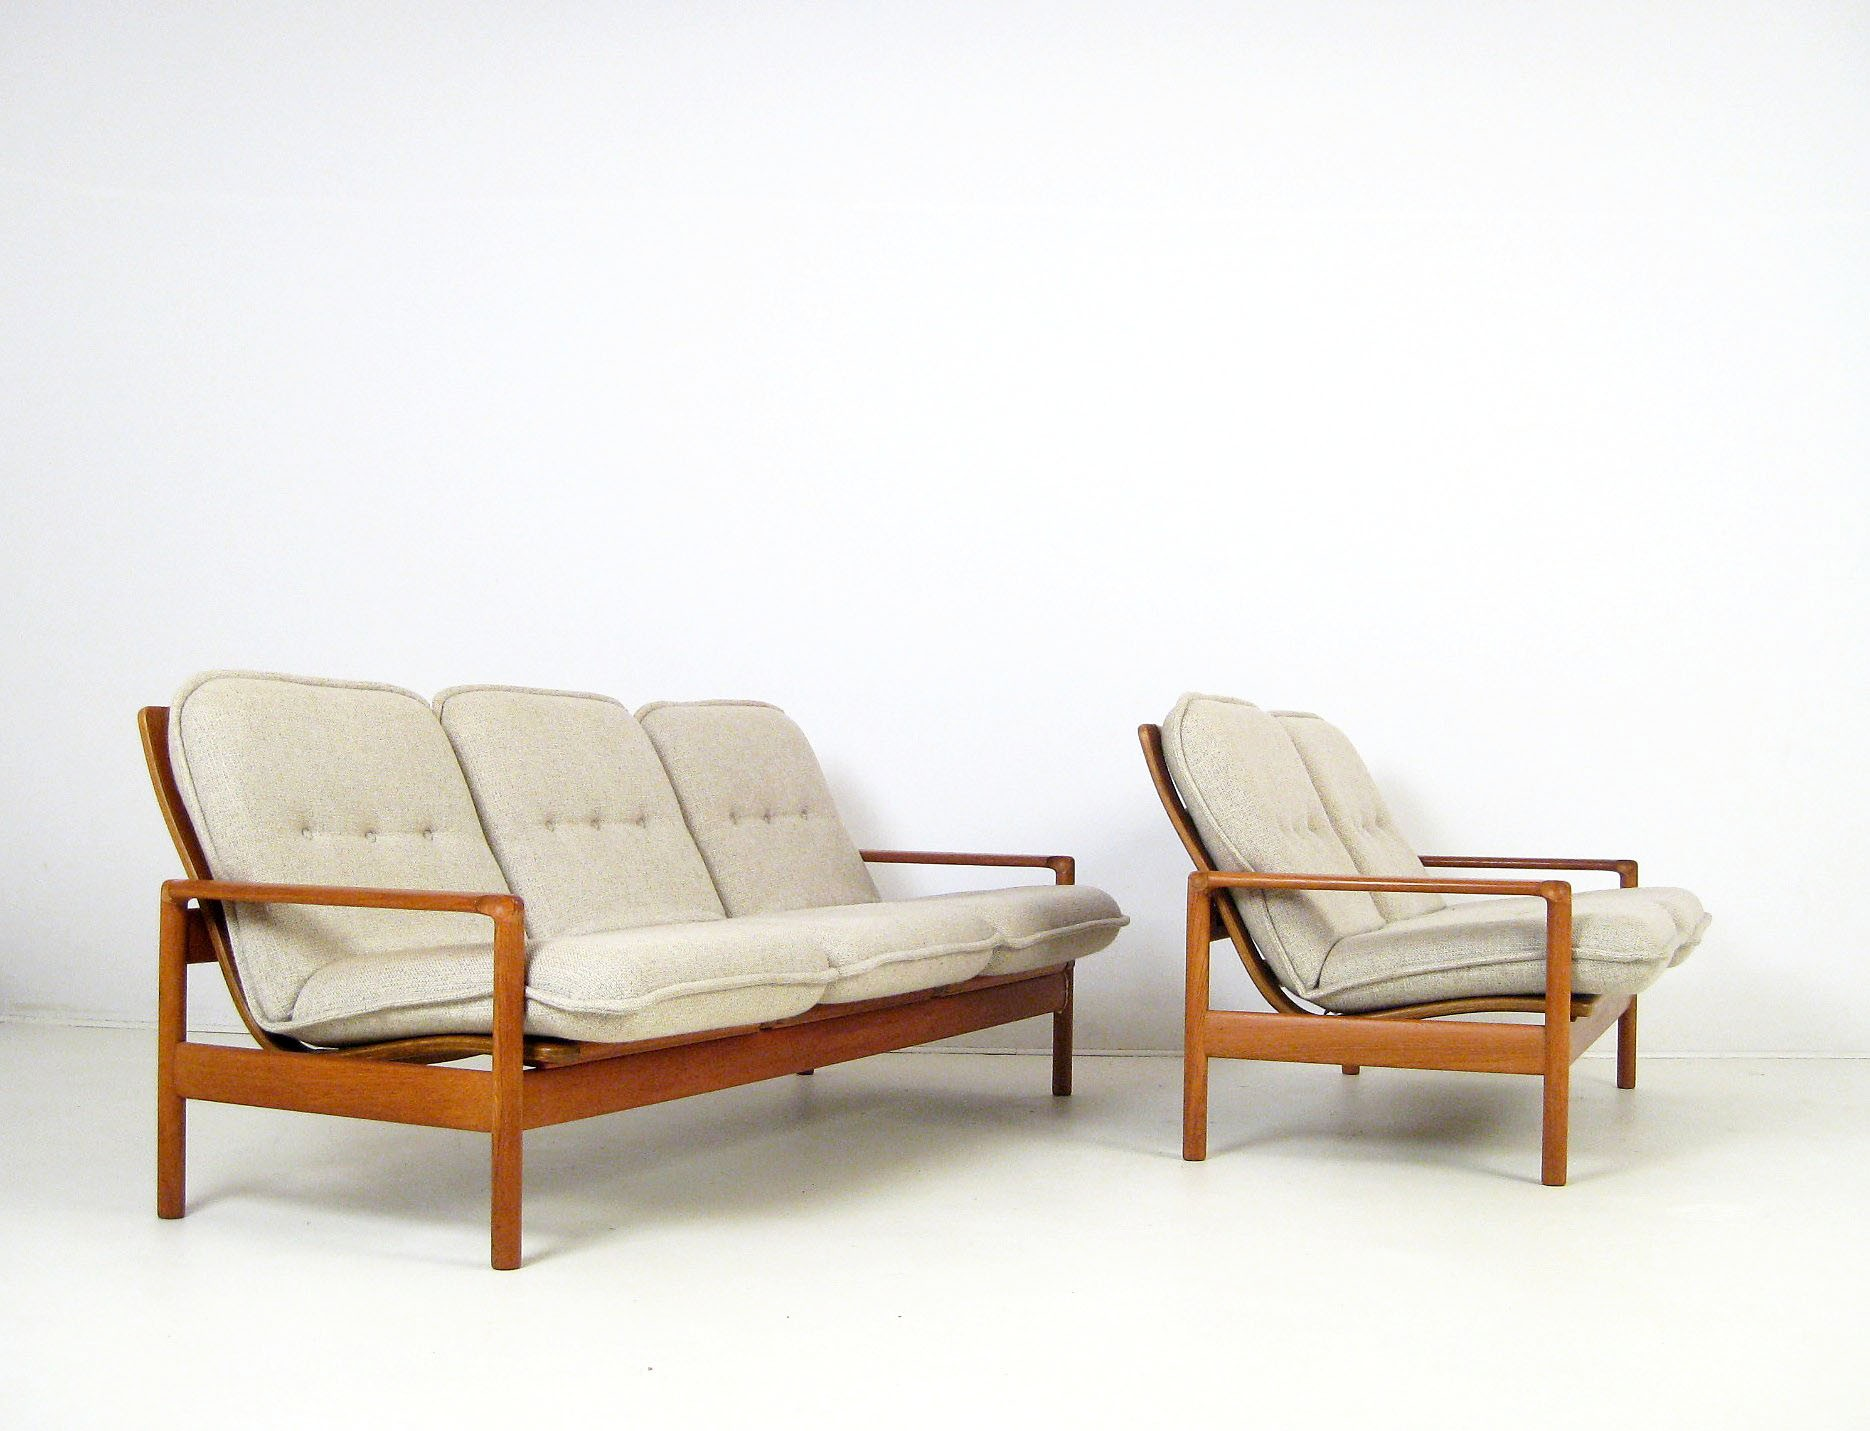 Scandinavian sofa set in teak and wool 1960s Design Market